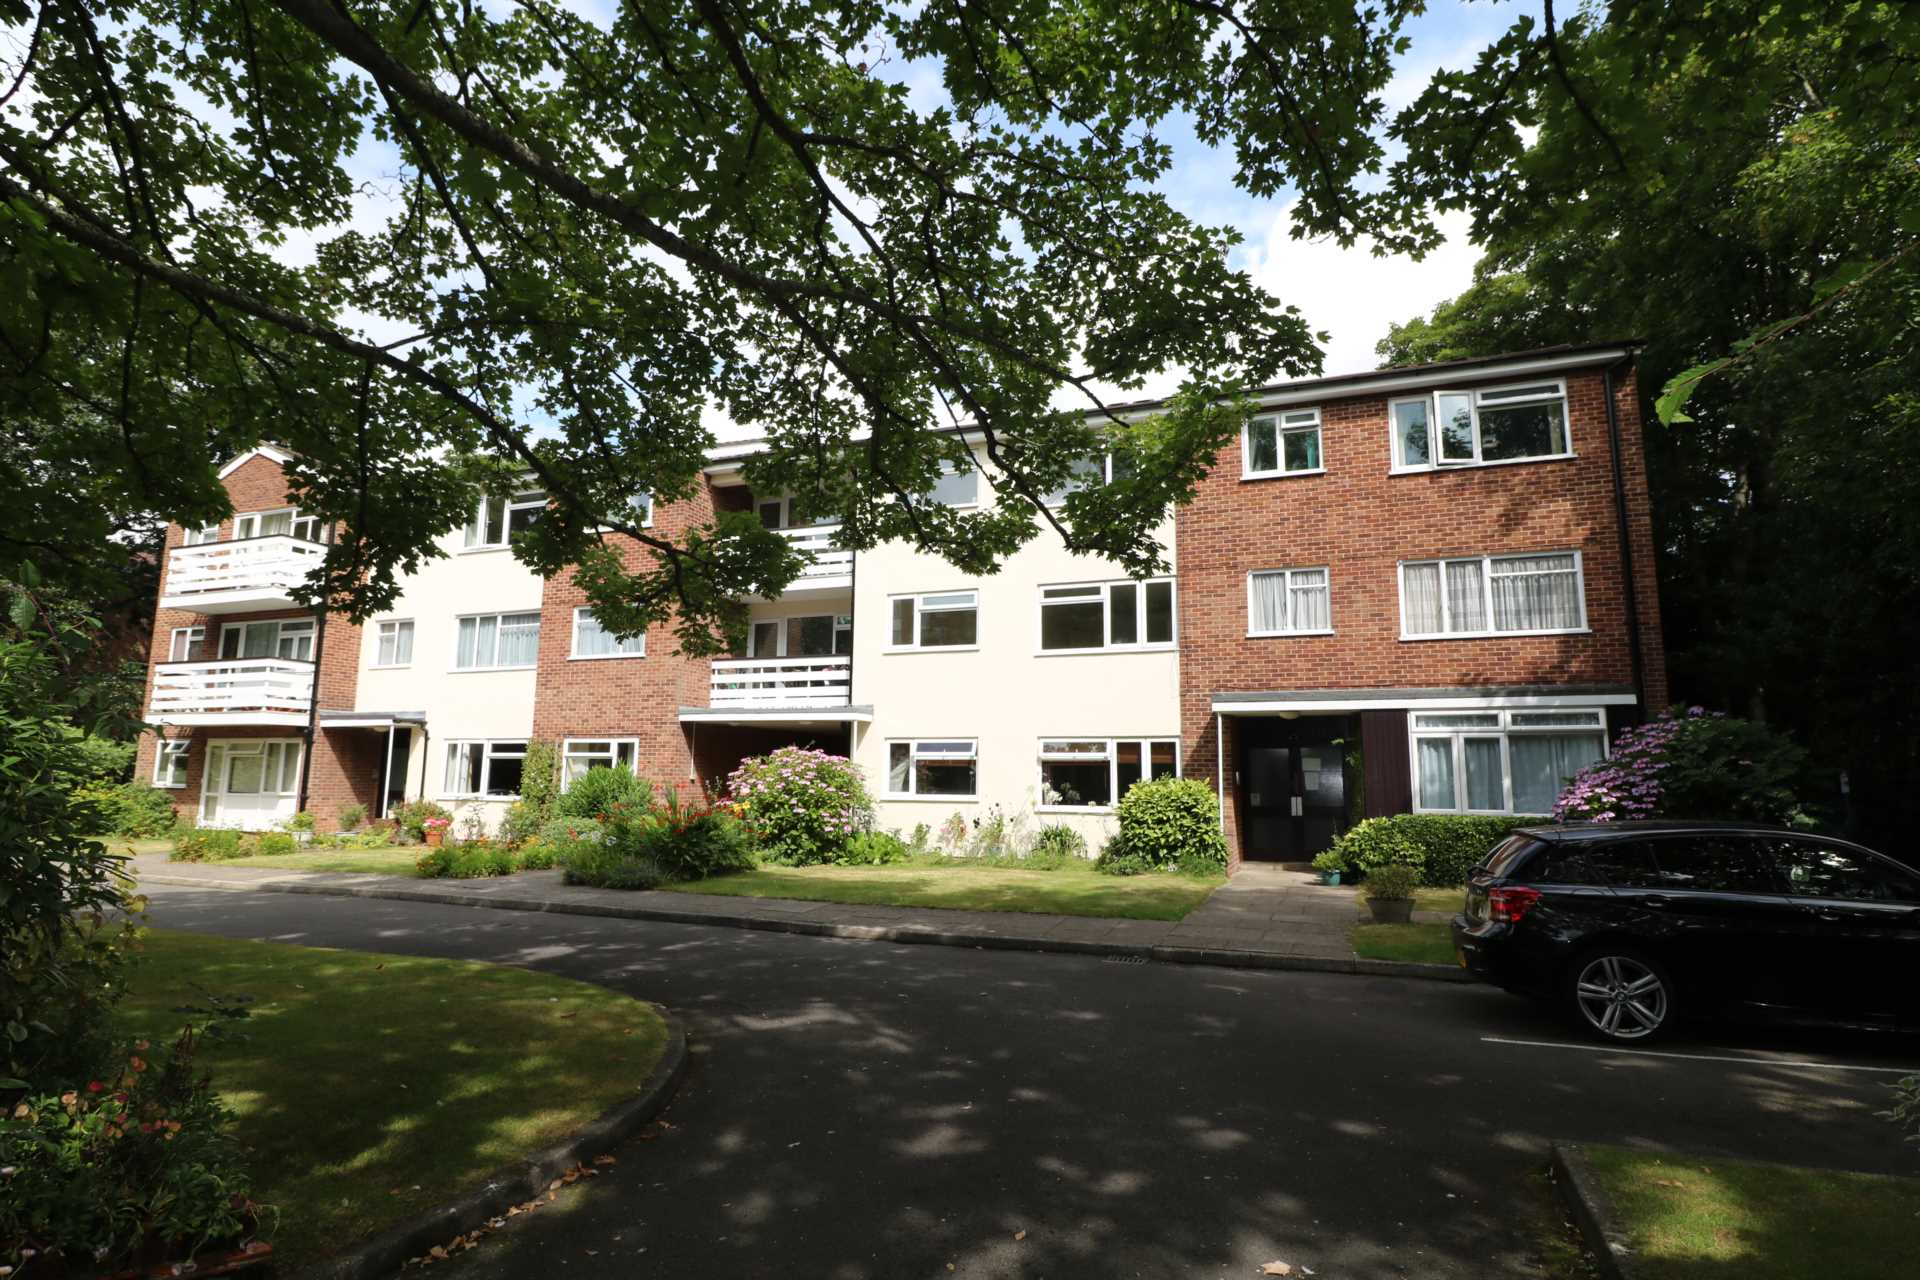 East Cliff Apartment No Chain Offers Invited £199,000